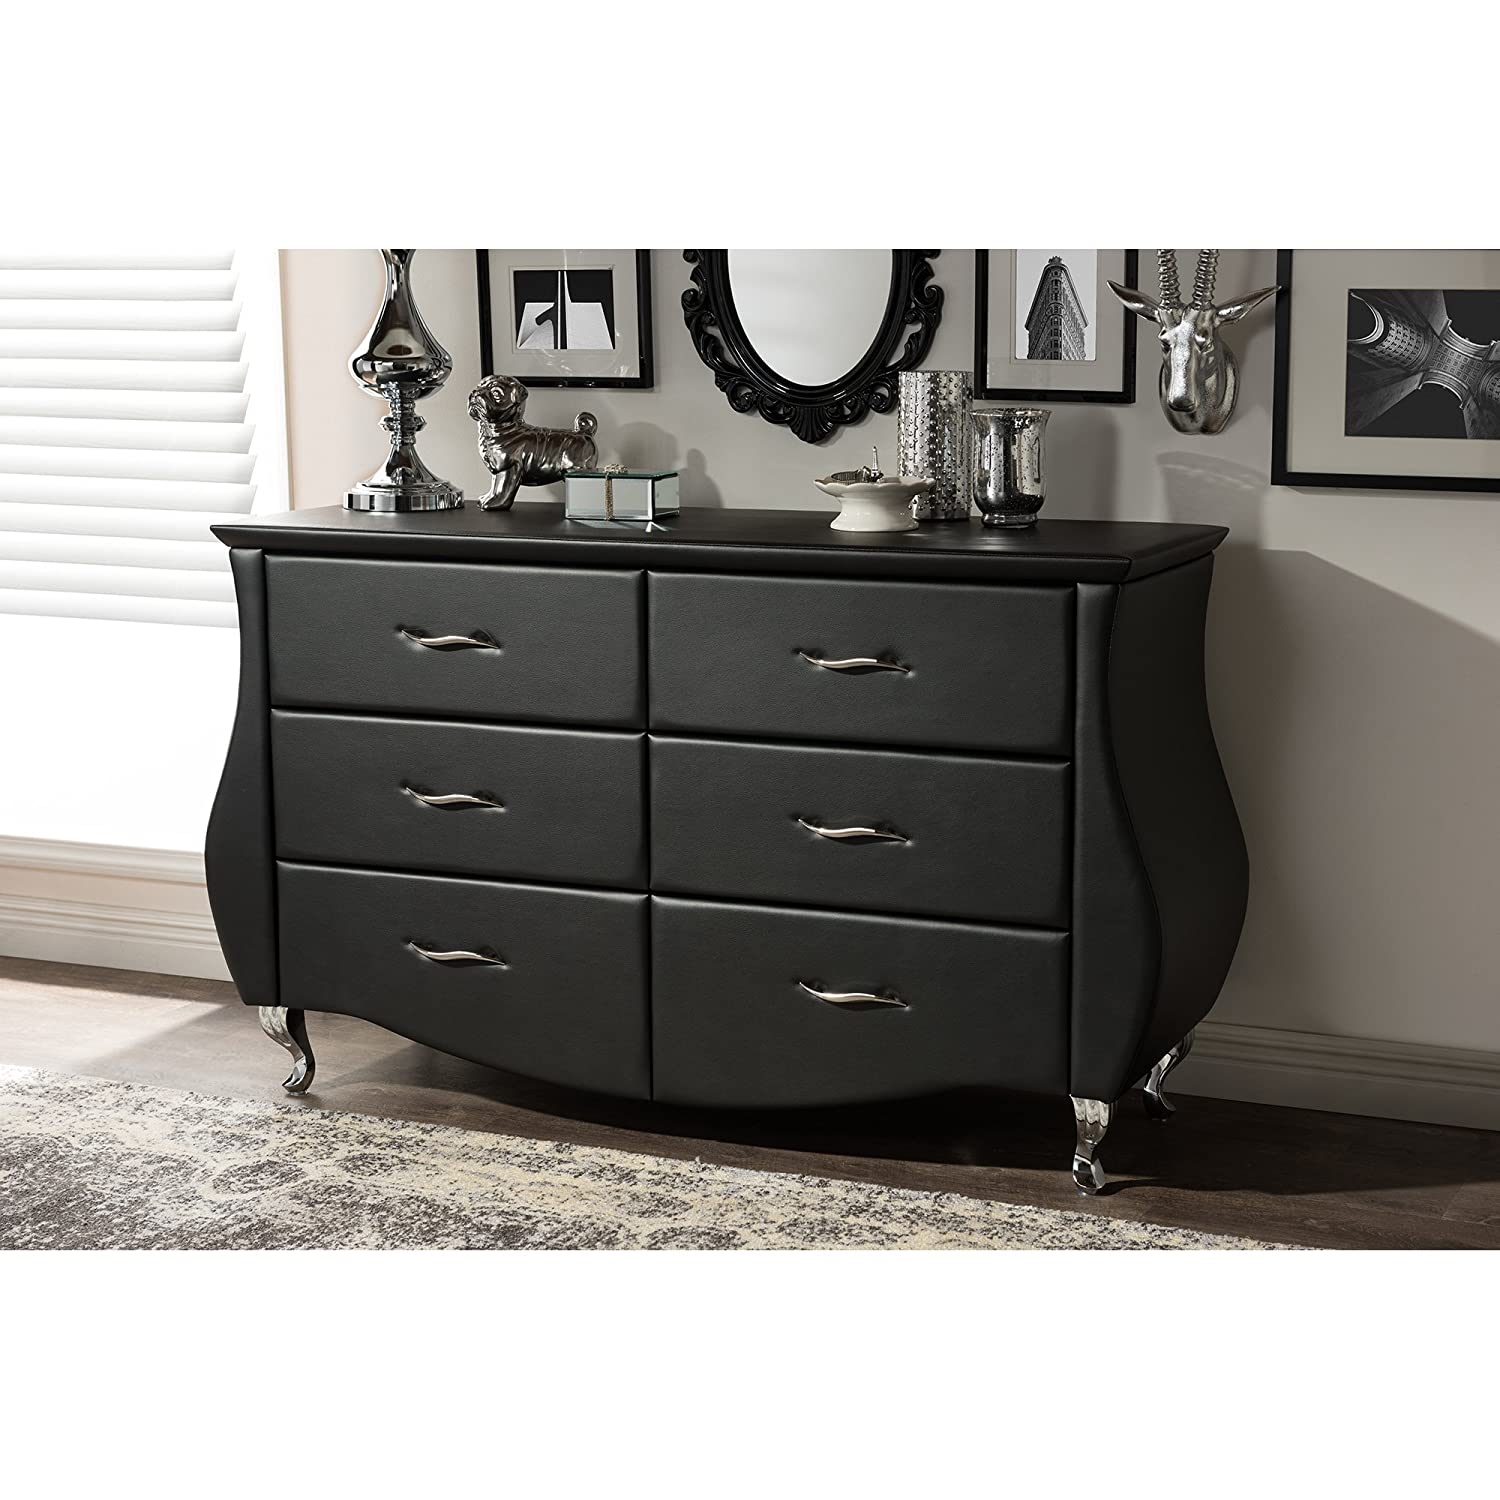 dresser qlt black wid belmont prod drawer p essential hei home ebony